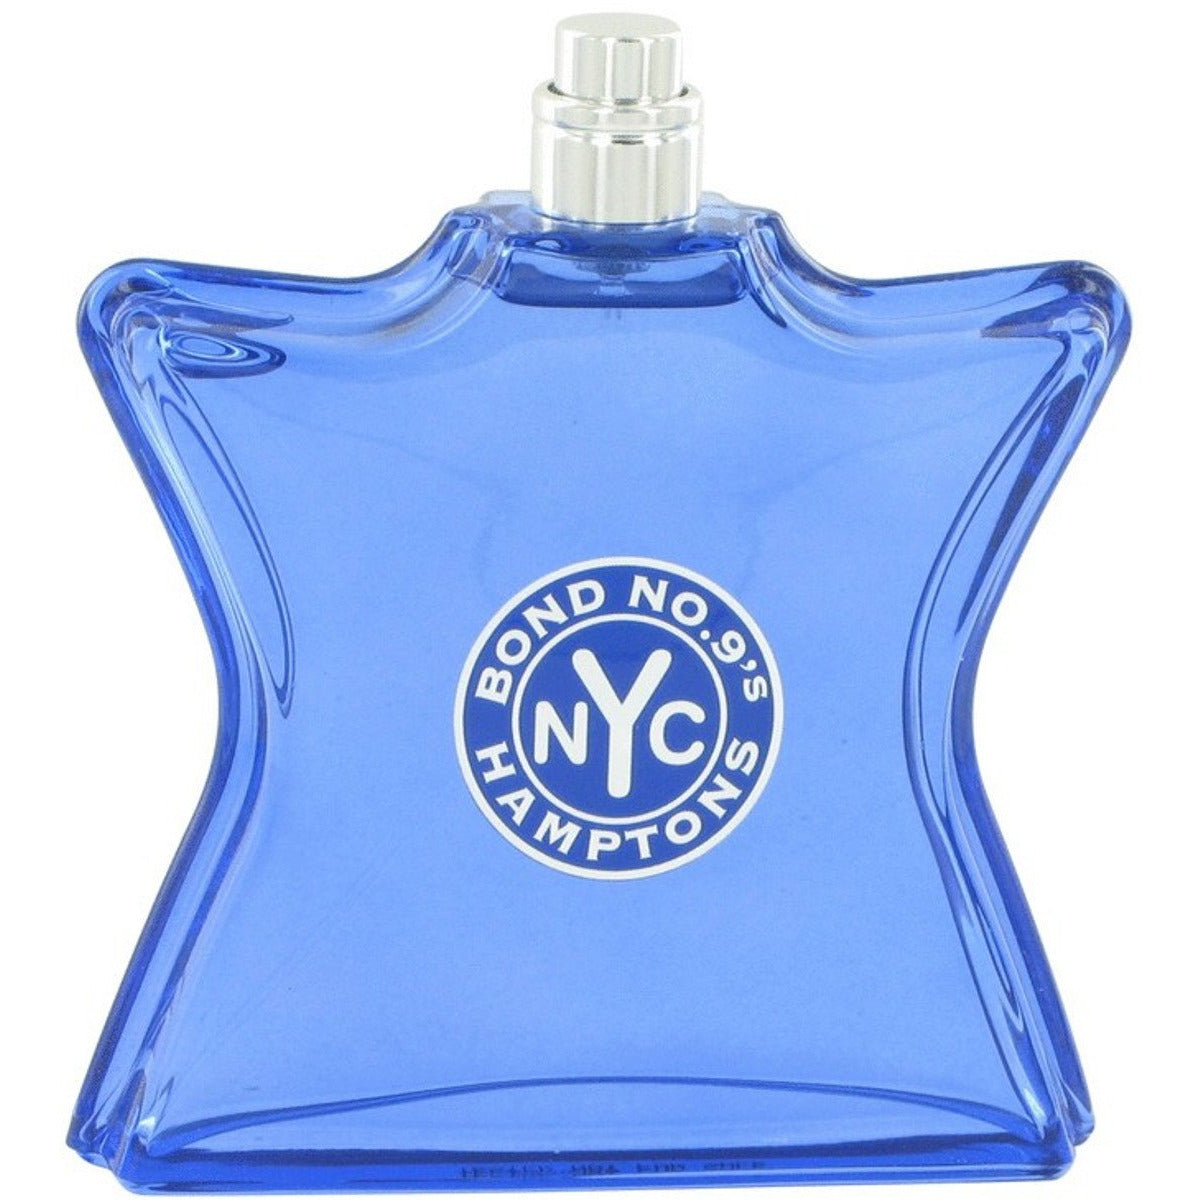 Hamptons by Bond No 9 perfume for unisex EDP 3.3 / 3.4 oz New Tester